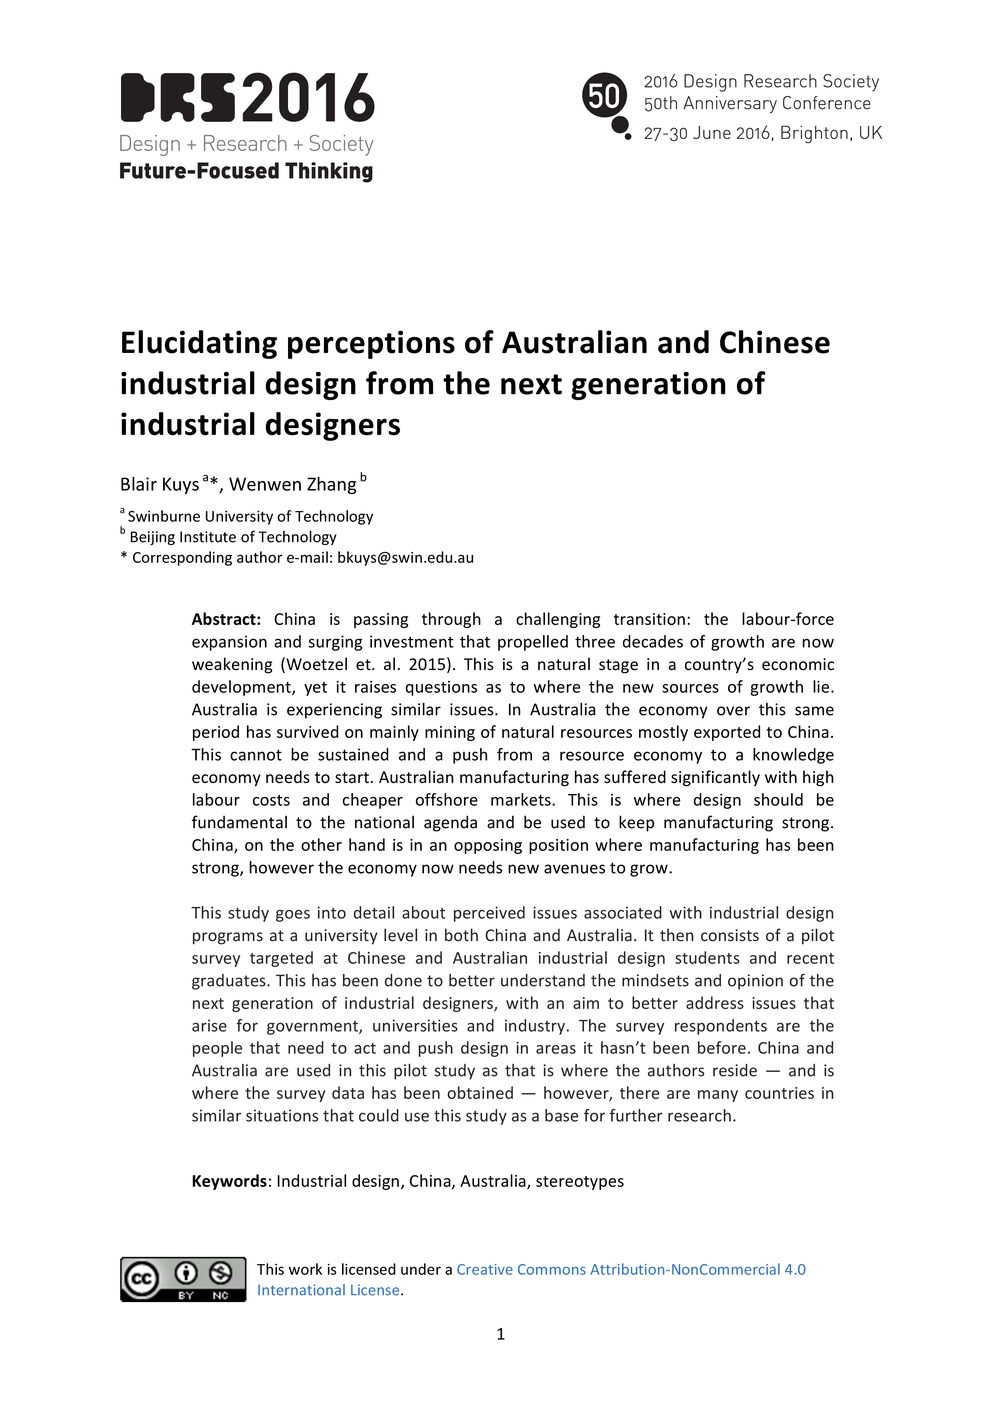 Elucidating perceptions of Australian and Chinese industrial design